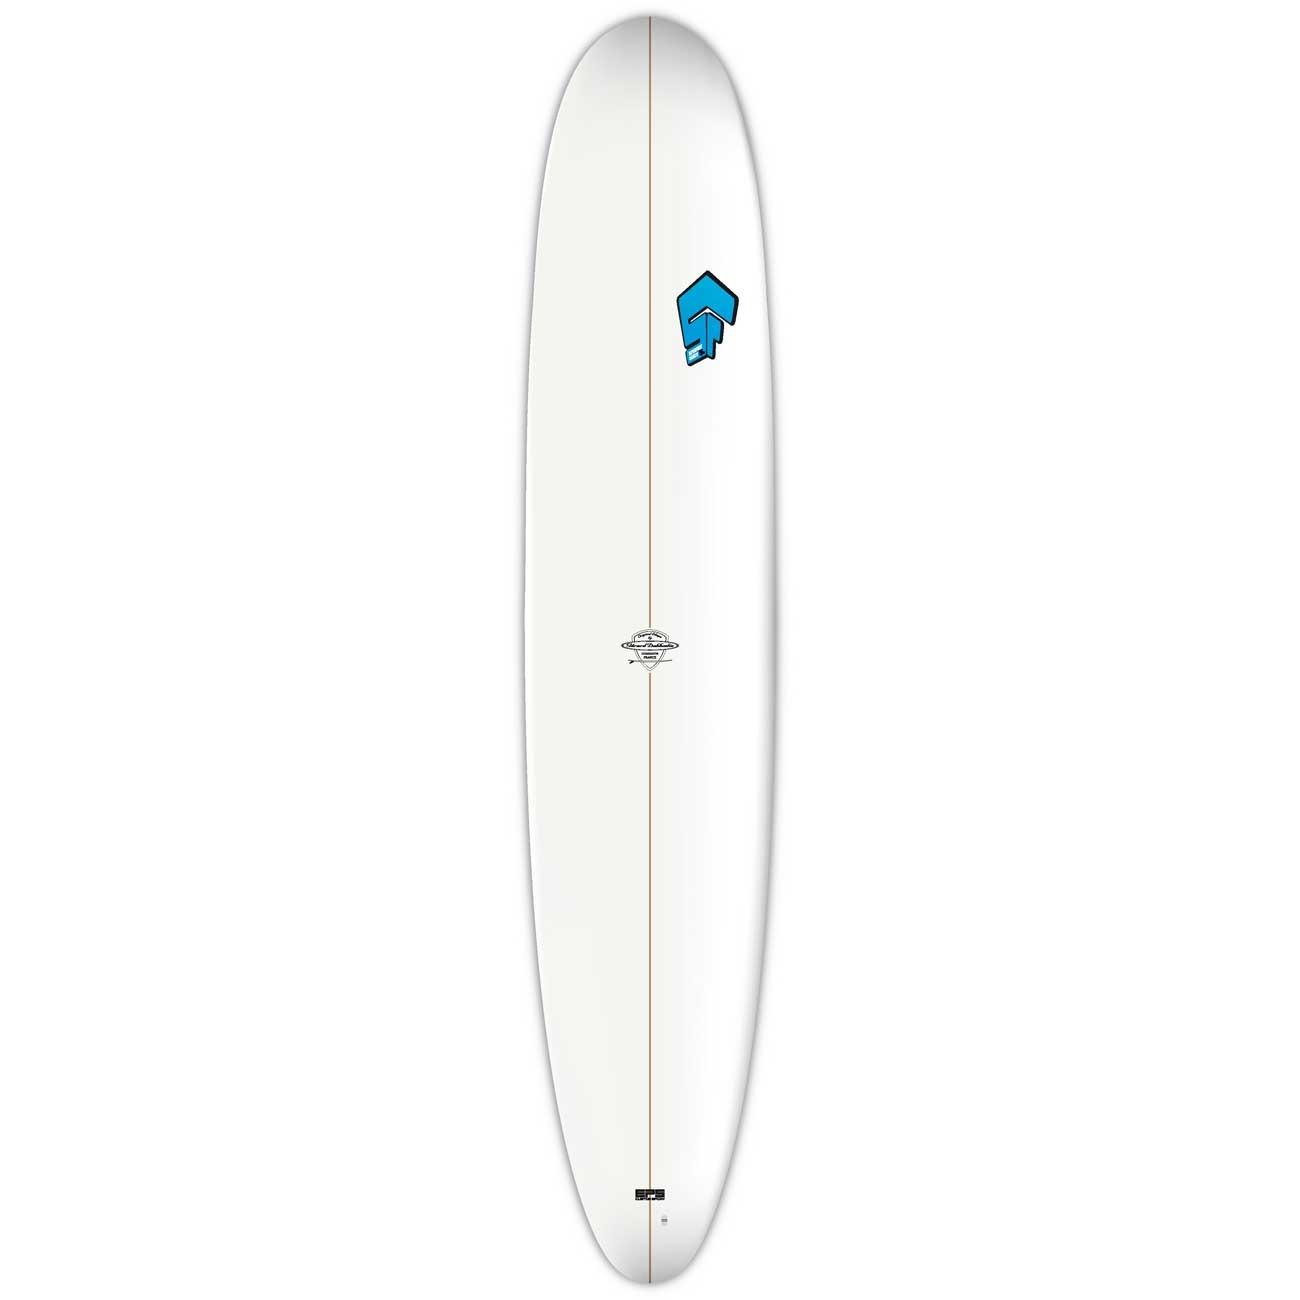 10'0 Cruiser Superfrog